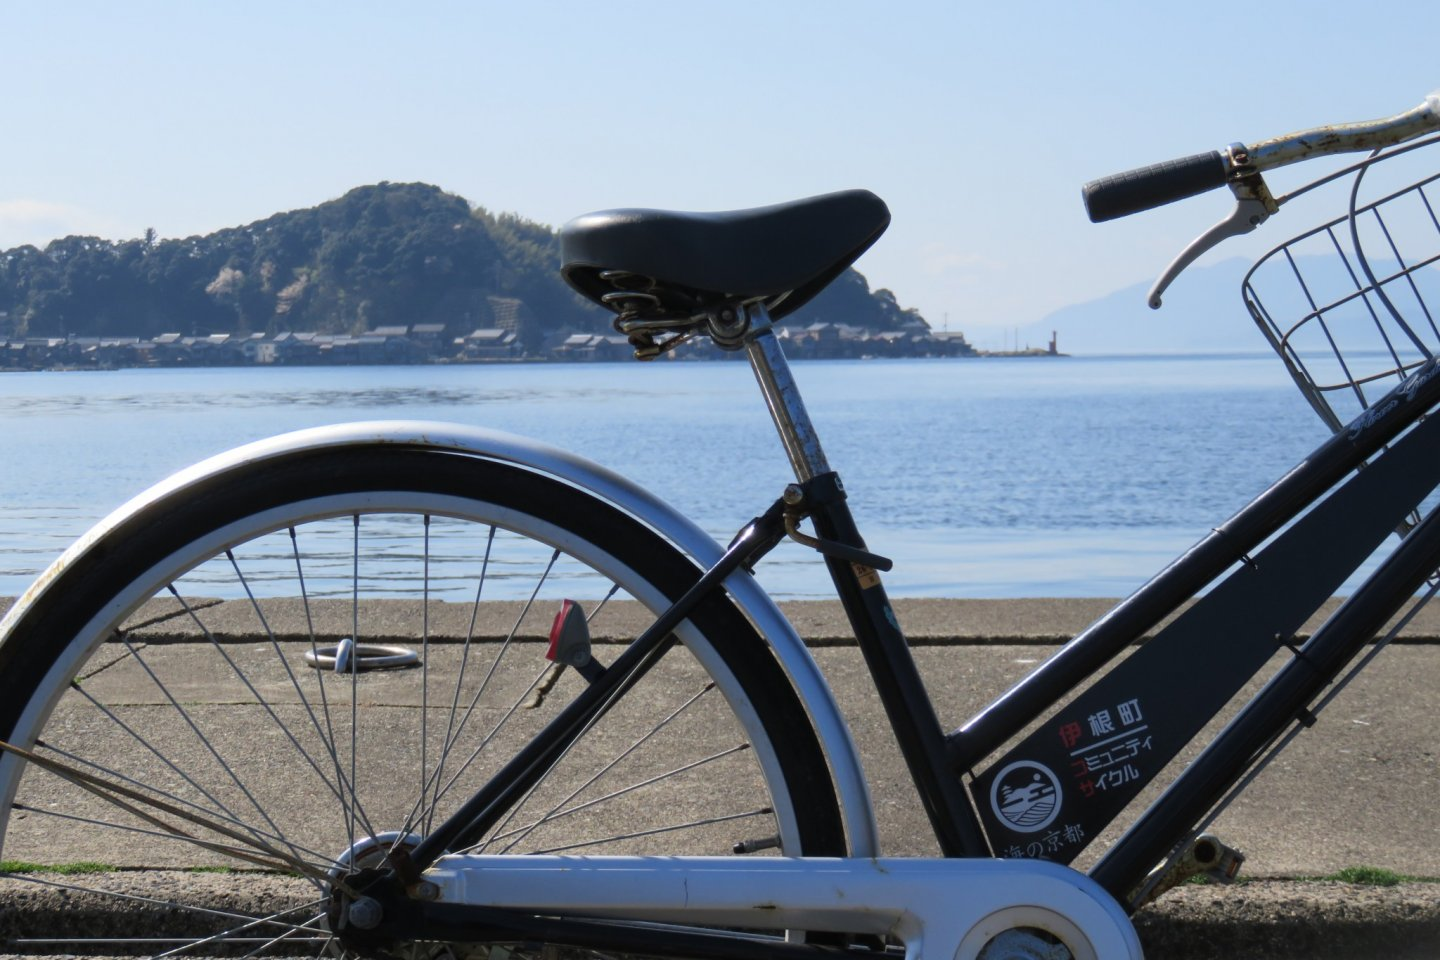 The level shoreline is perfect for the recreational cyclist